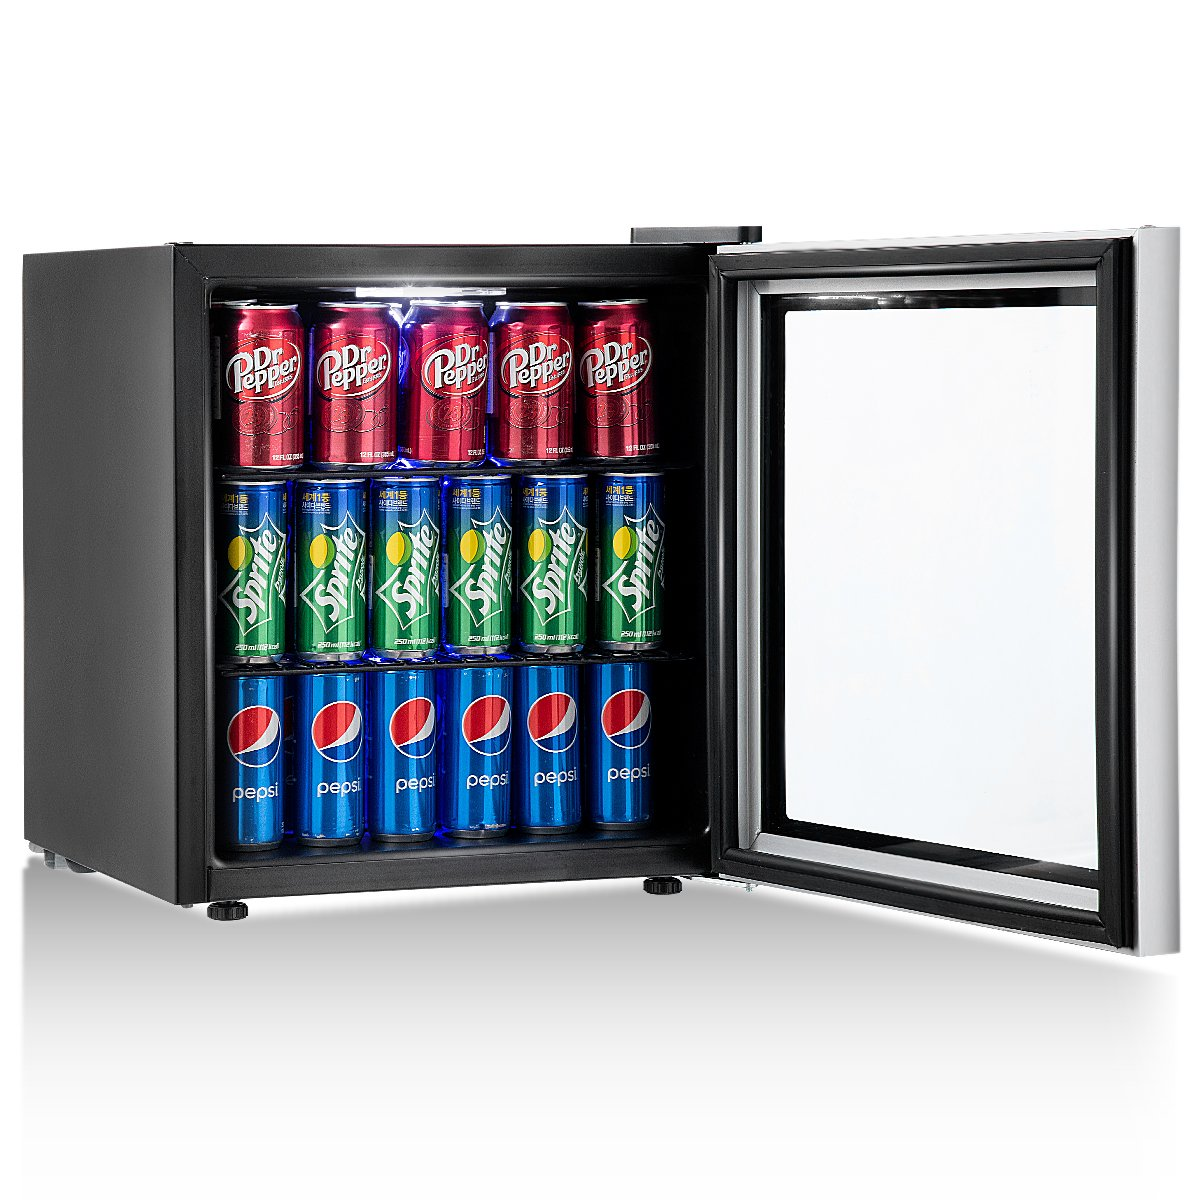 Costway 60 Can Beverage Refrigerator And Cooler Mini Fridge With